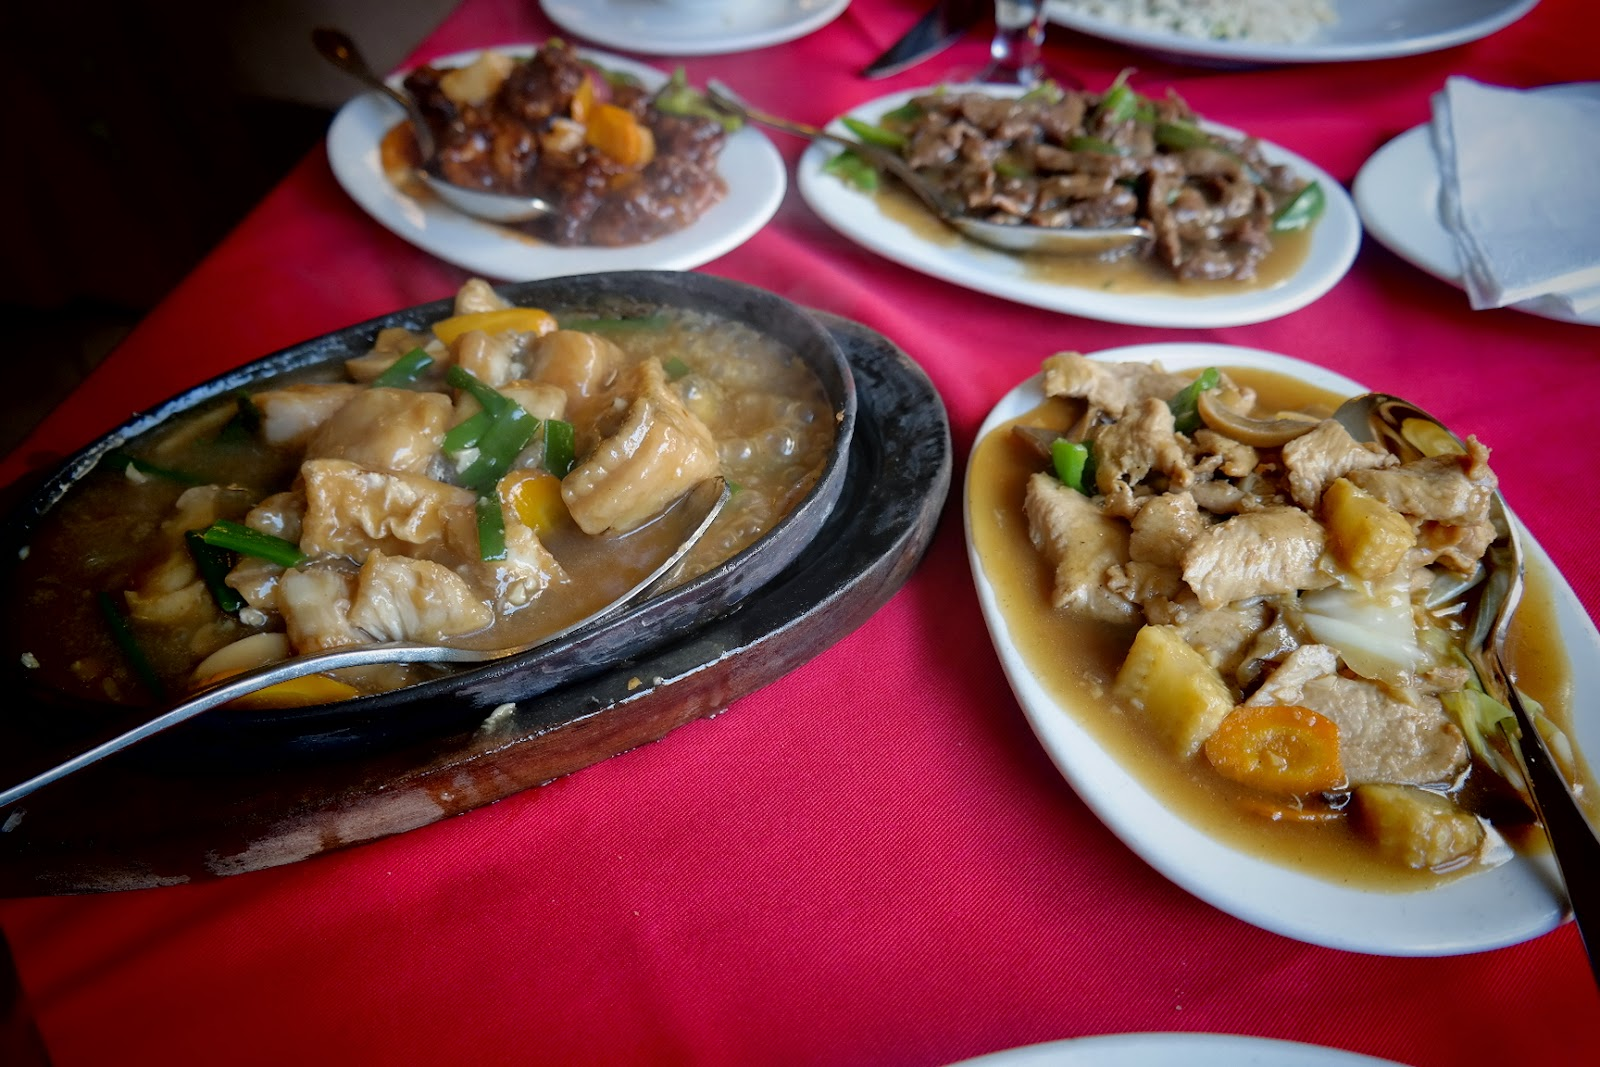 shredded beef, sweet and sour pork, hot plate fish, chicken and vegetables